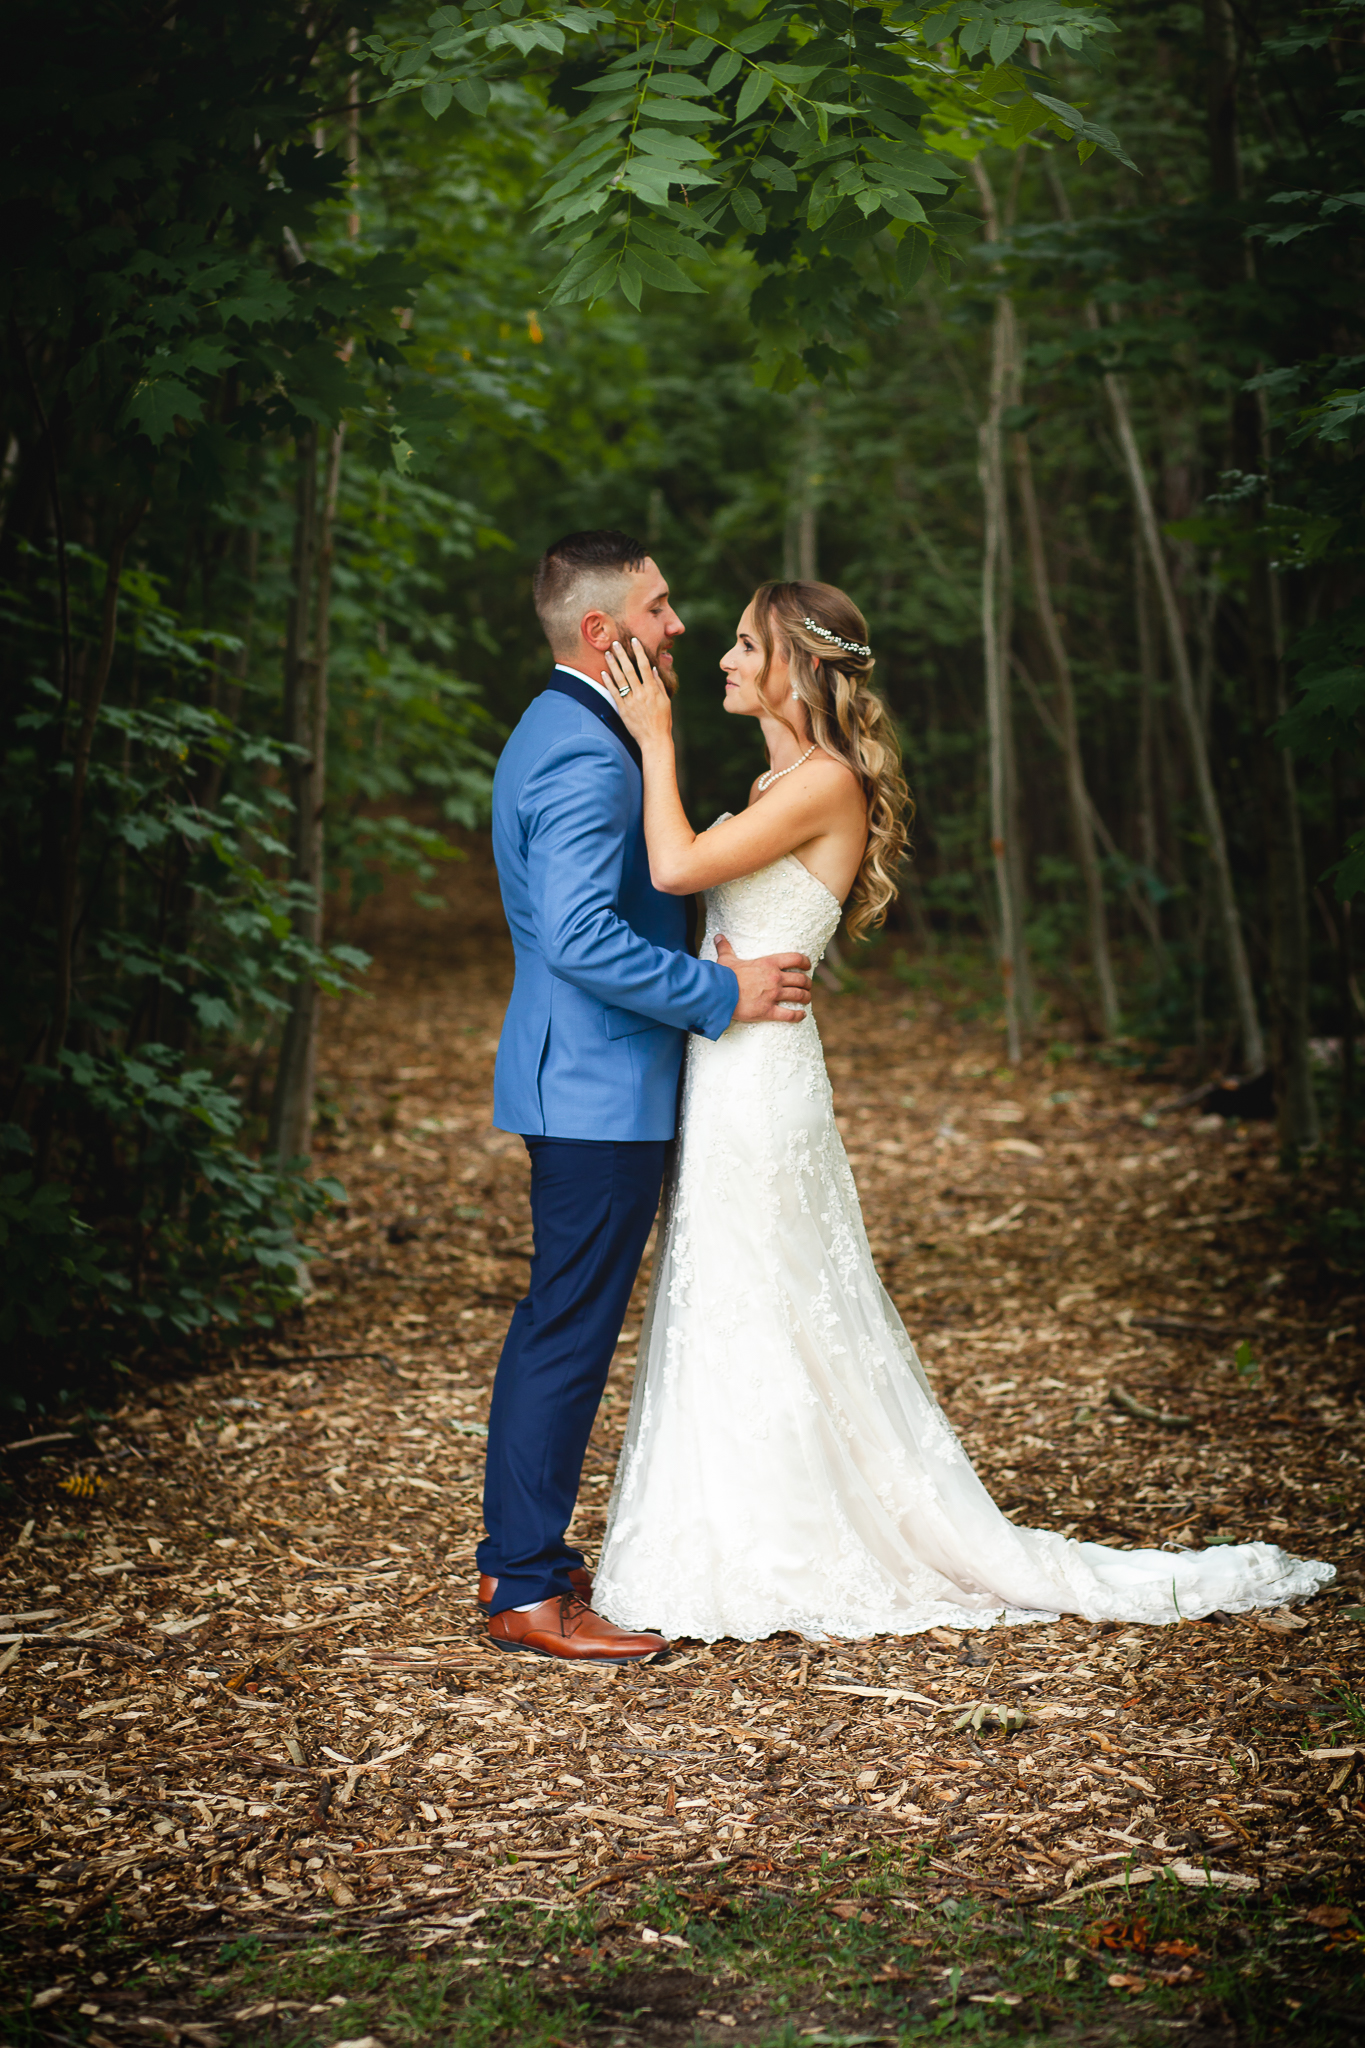 Barrie Wedding Photography- Amy D Photography- Bride and Groom Poses- Snow Valley Wedding- Bride Pose- Groom Pose- Wedding Photography Poses-2.jpg